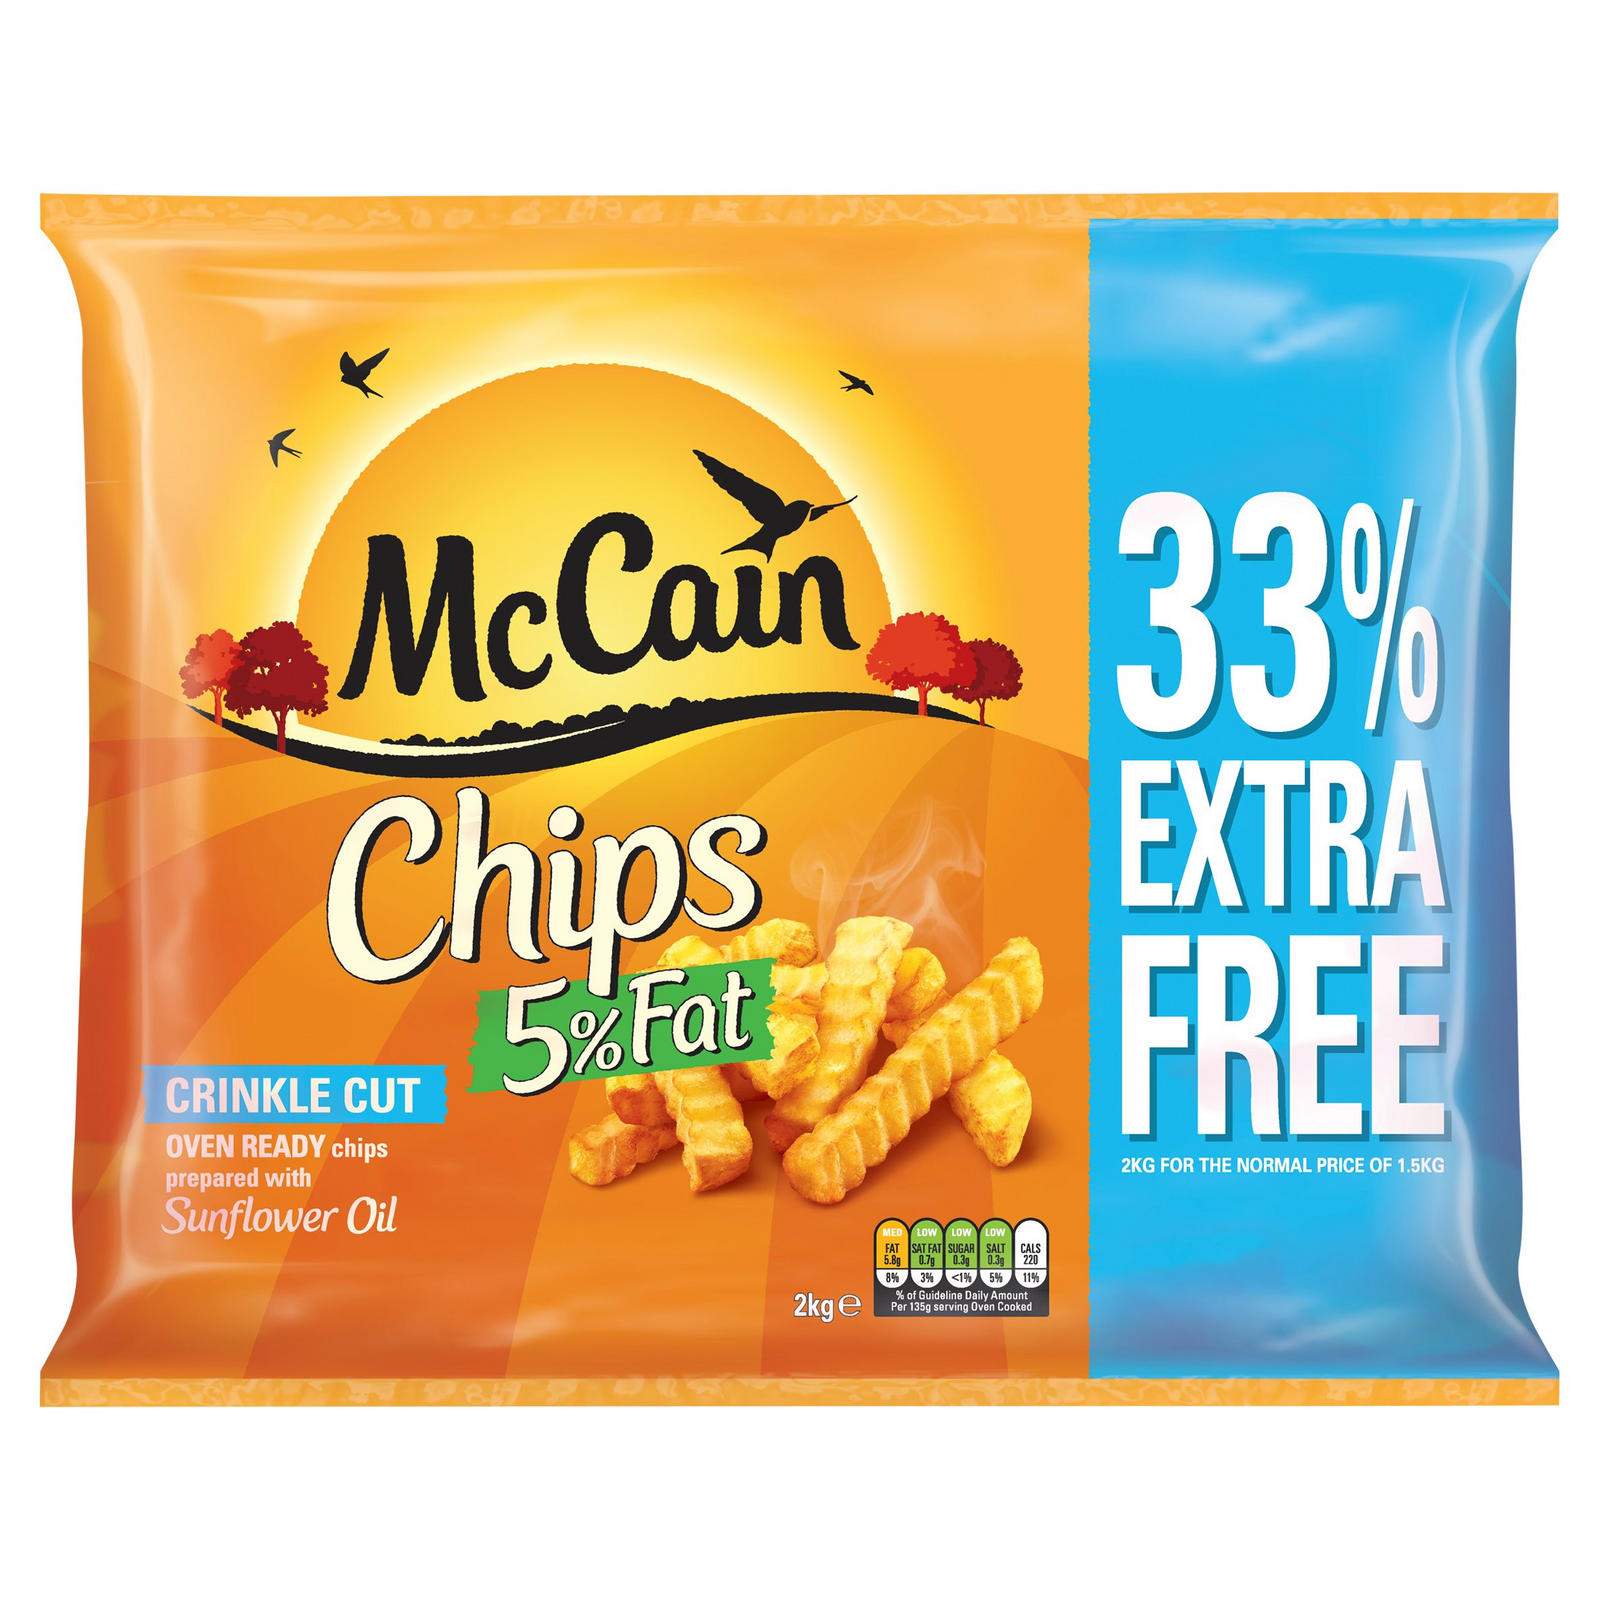 McCain Chips 5% Fat Crinkle Cut 2kg | Chips | Iceland Foods